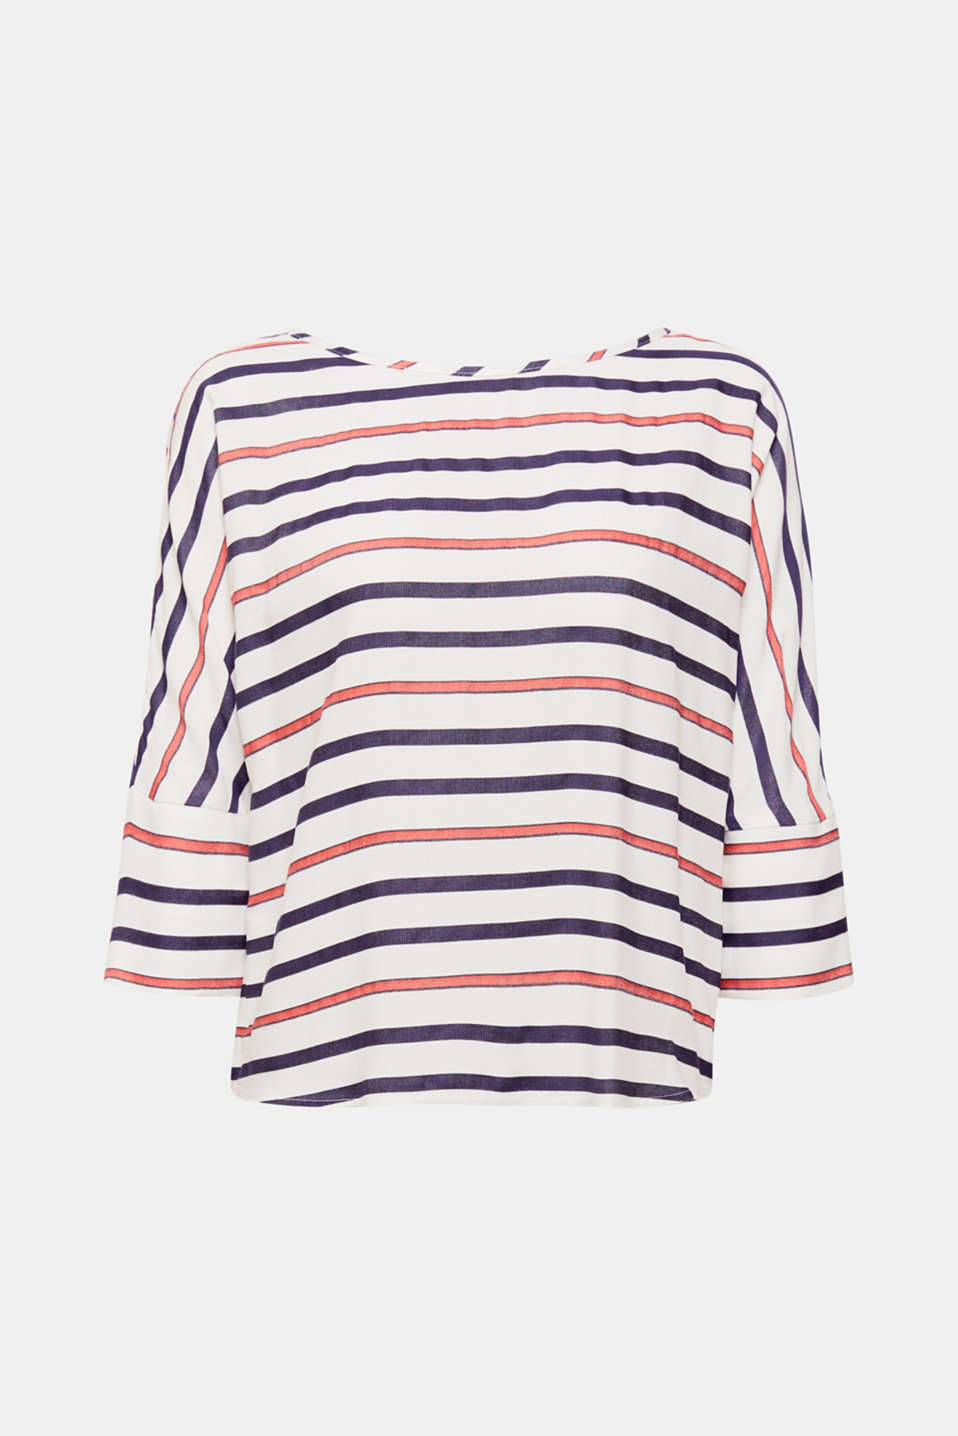 Cropped batwing sleeves and a bold striped pattern give this floaty, boxy blouse its modern look!